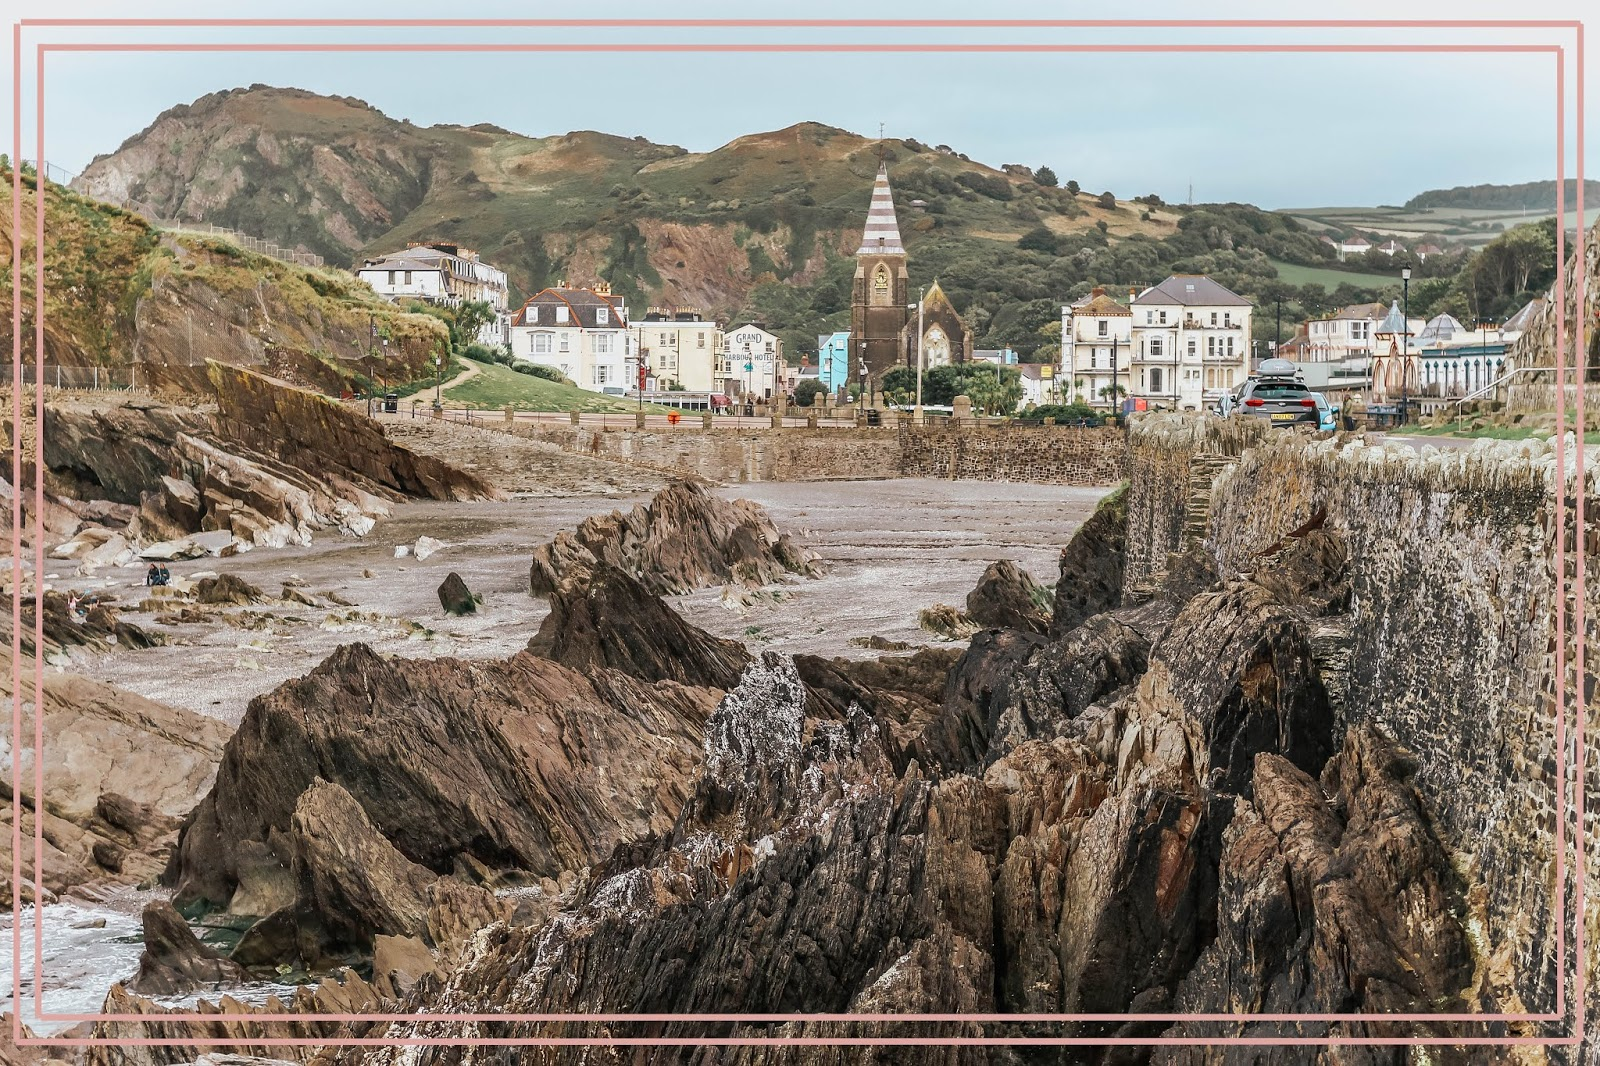 Ilfracombe Devon Coastline in Autumn